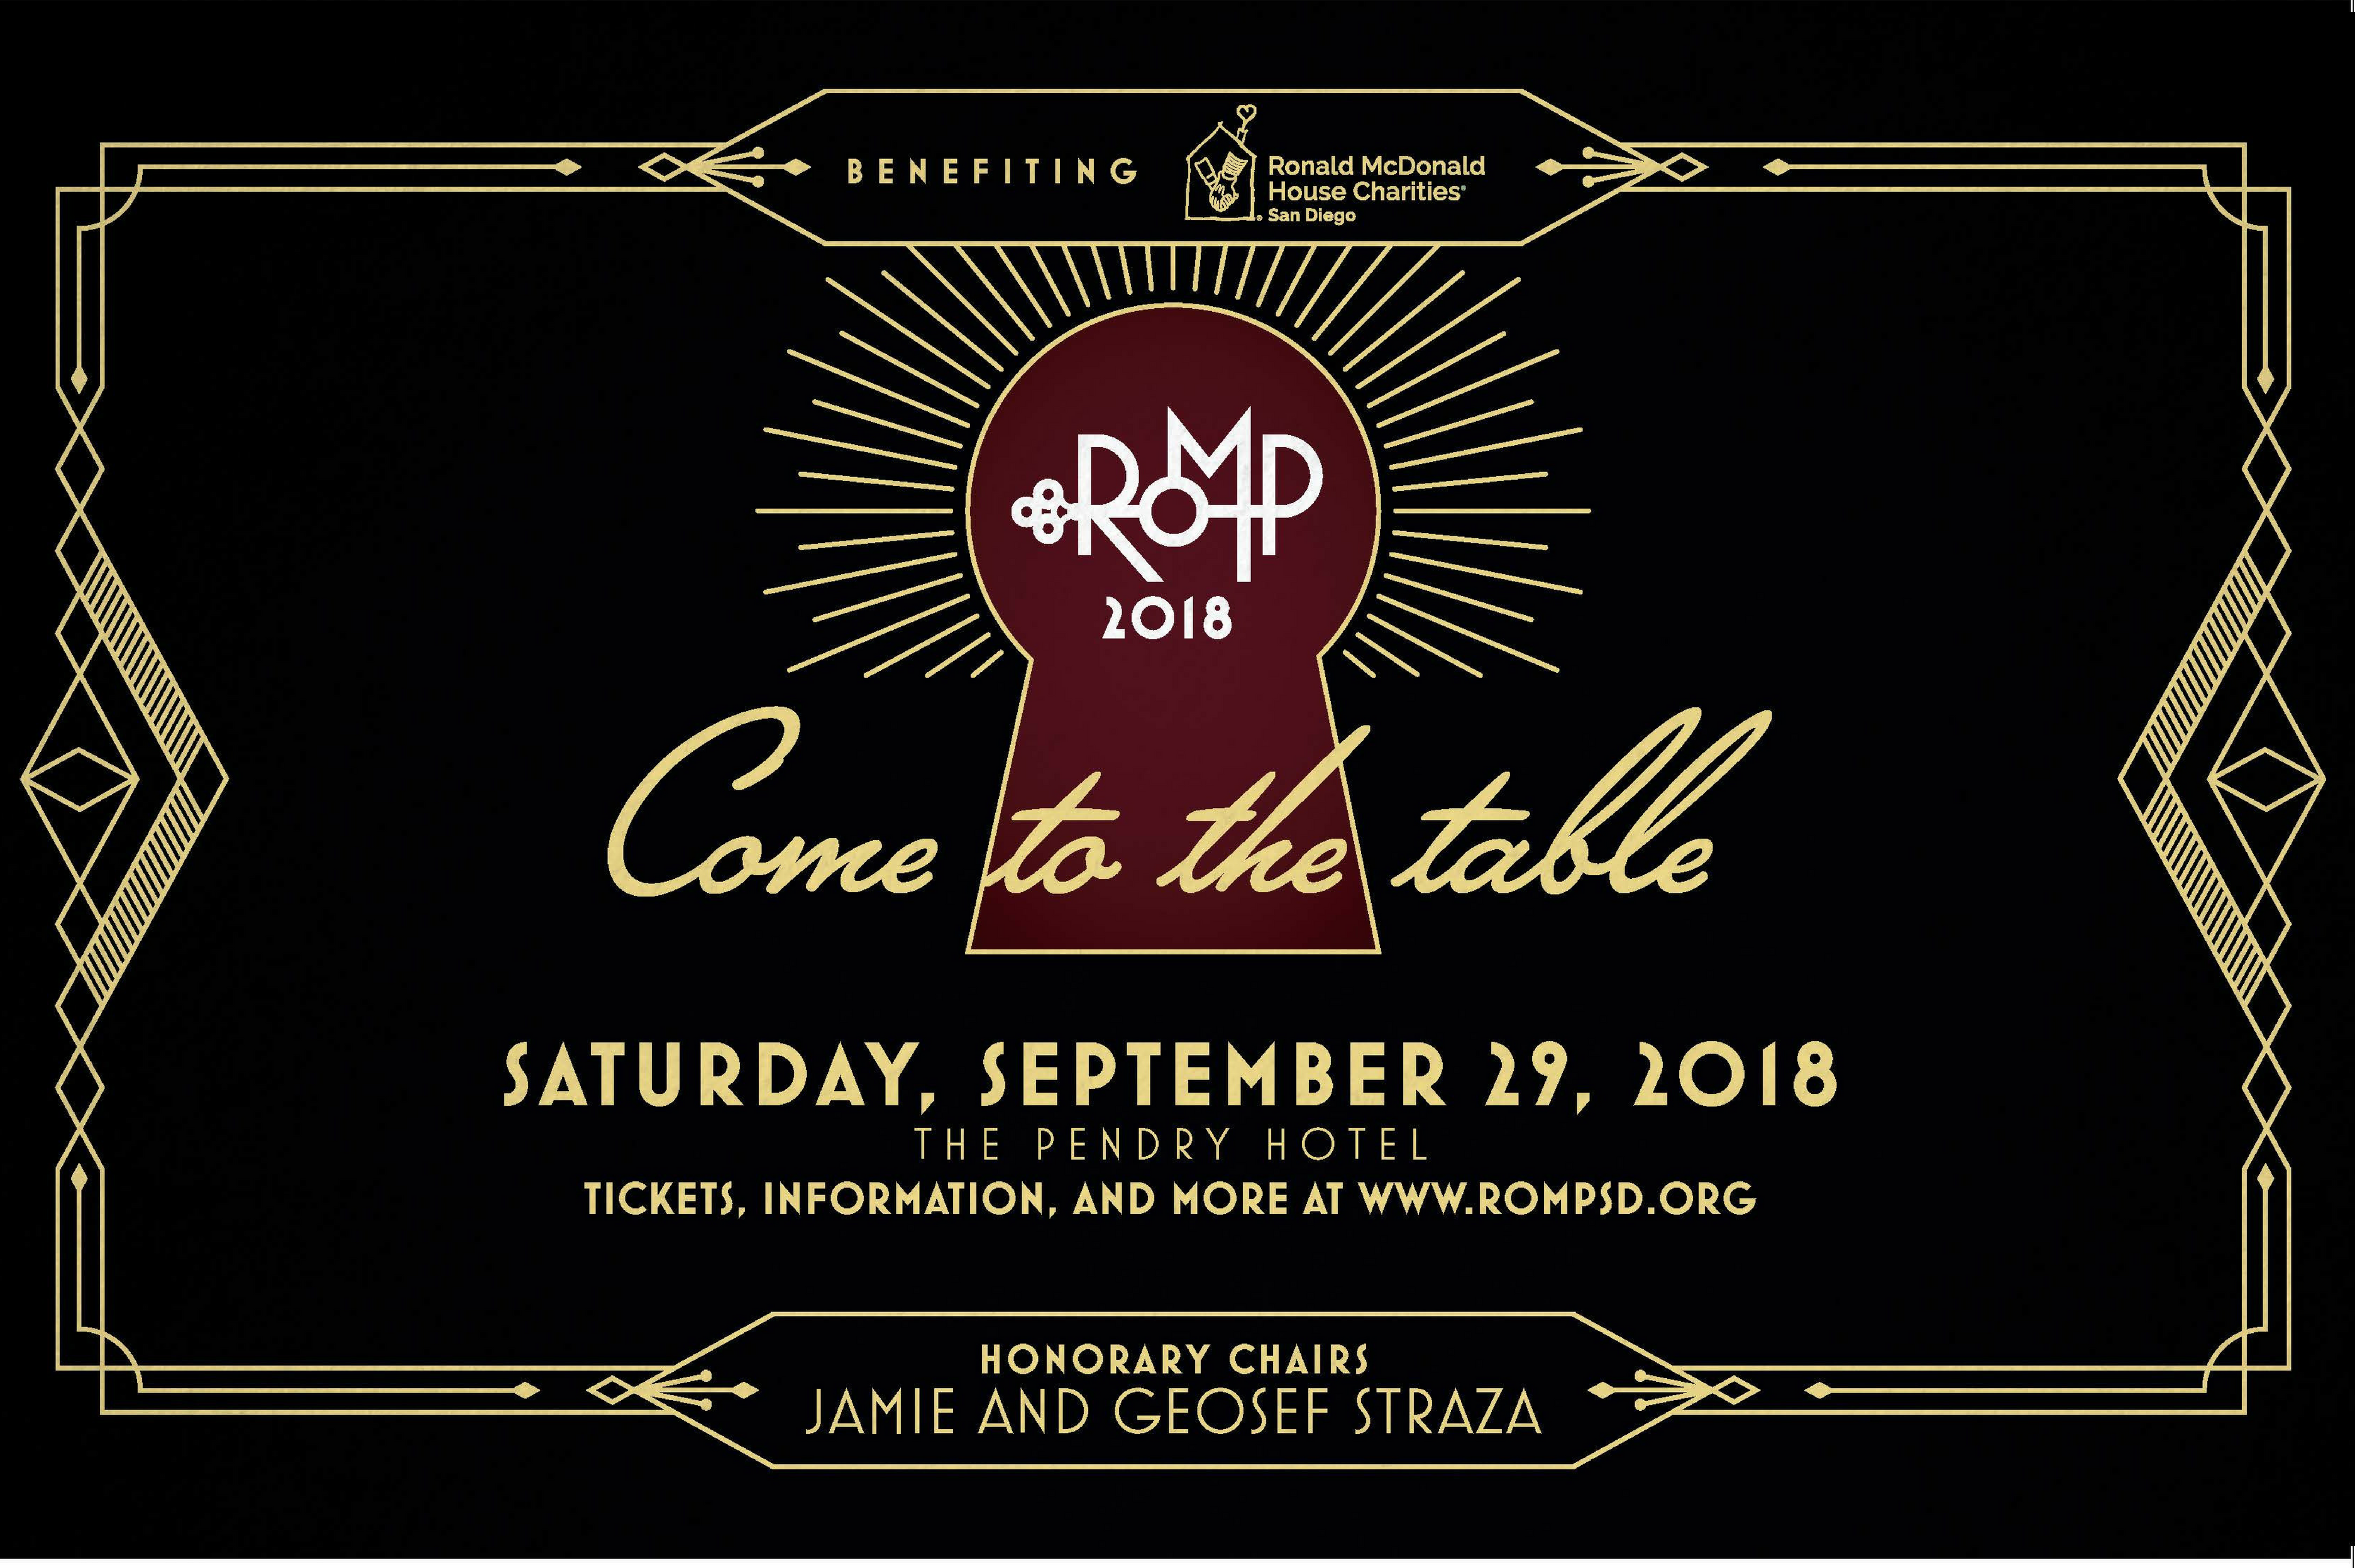 ROMP Come to the Table Saturday September 29 2018 The Pendry Hotel Honorary Chairs Jamie and Geosef Straza www.rompsd.org